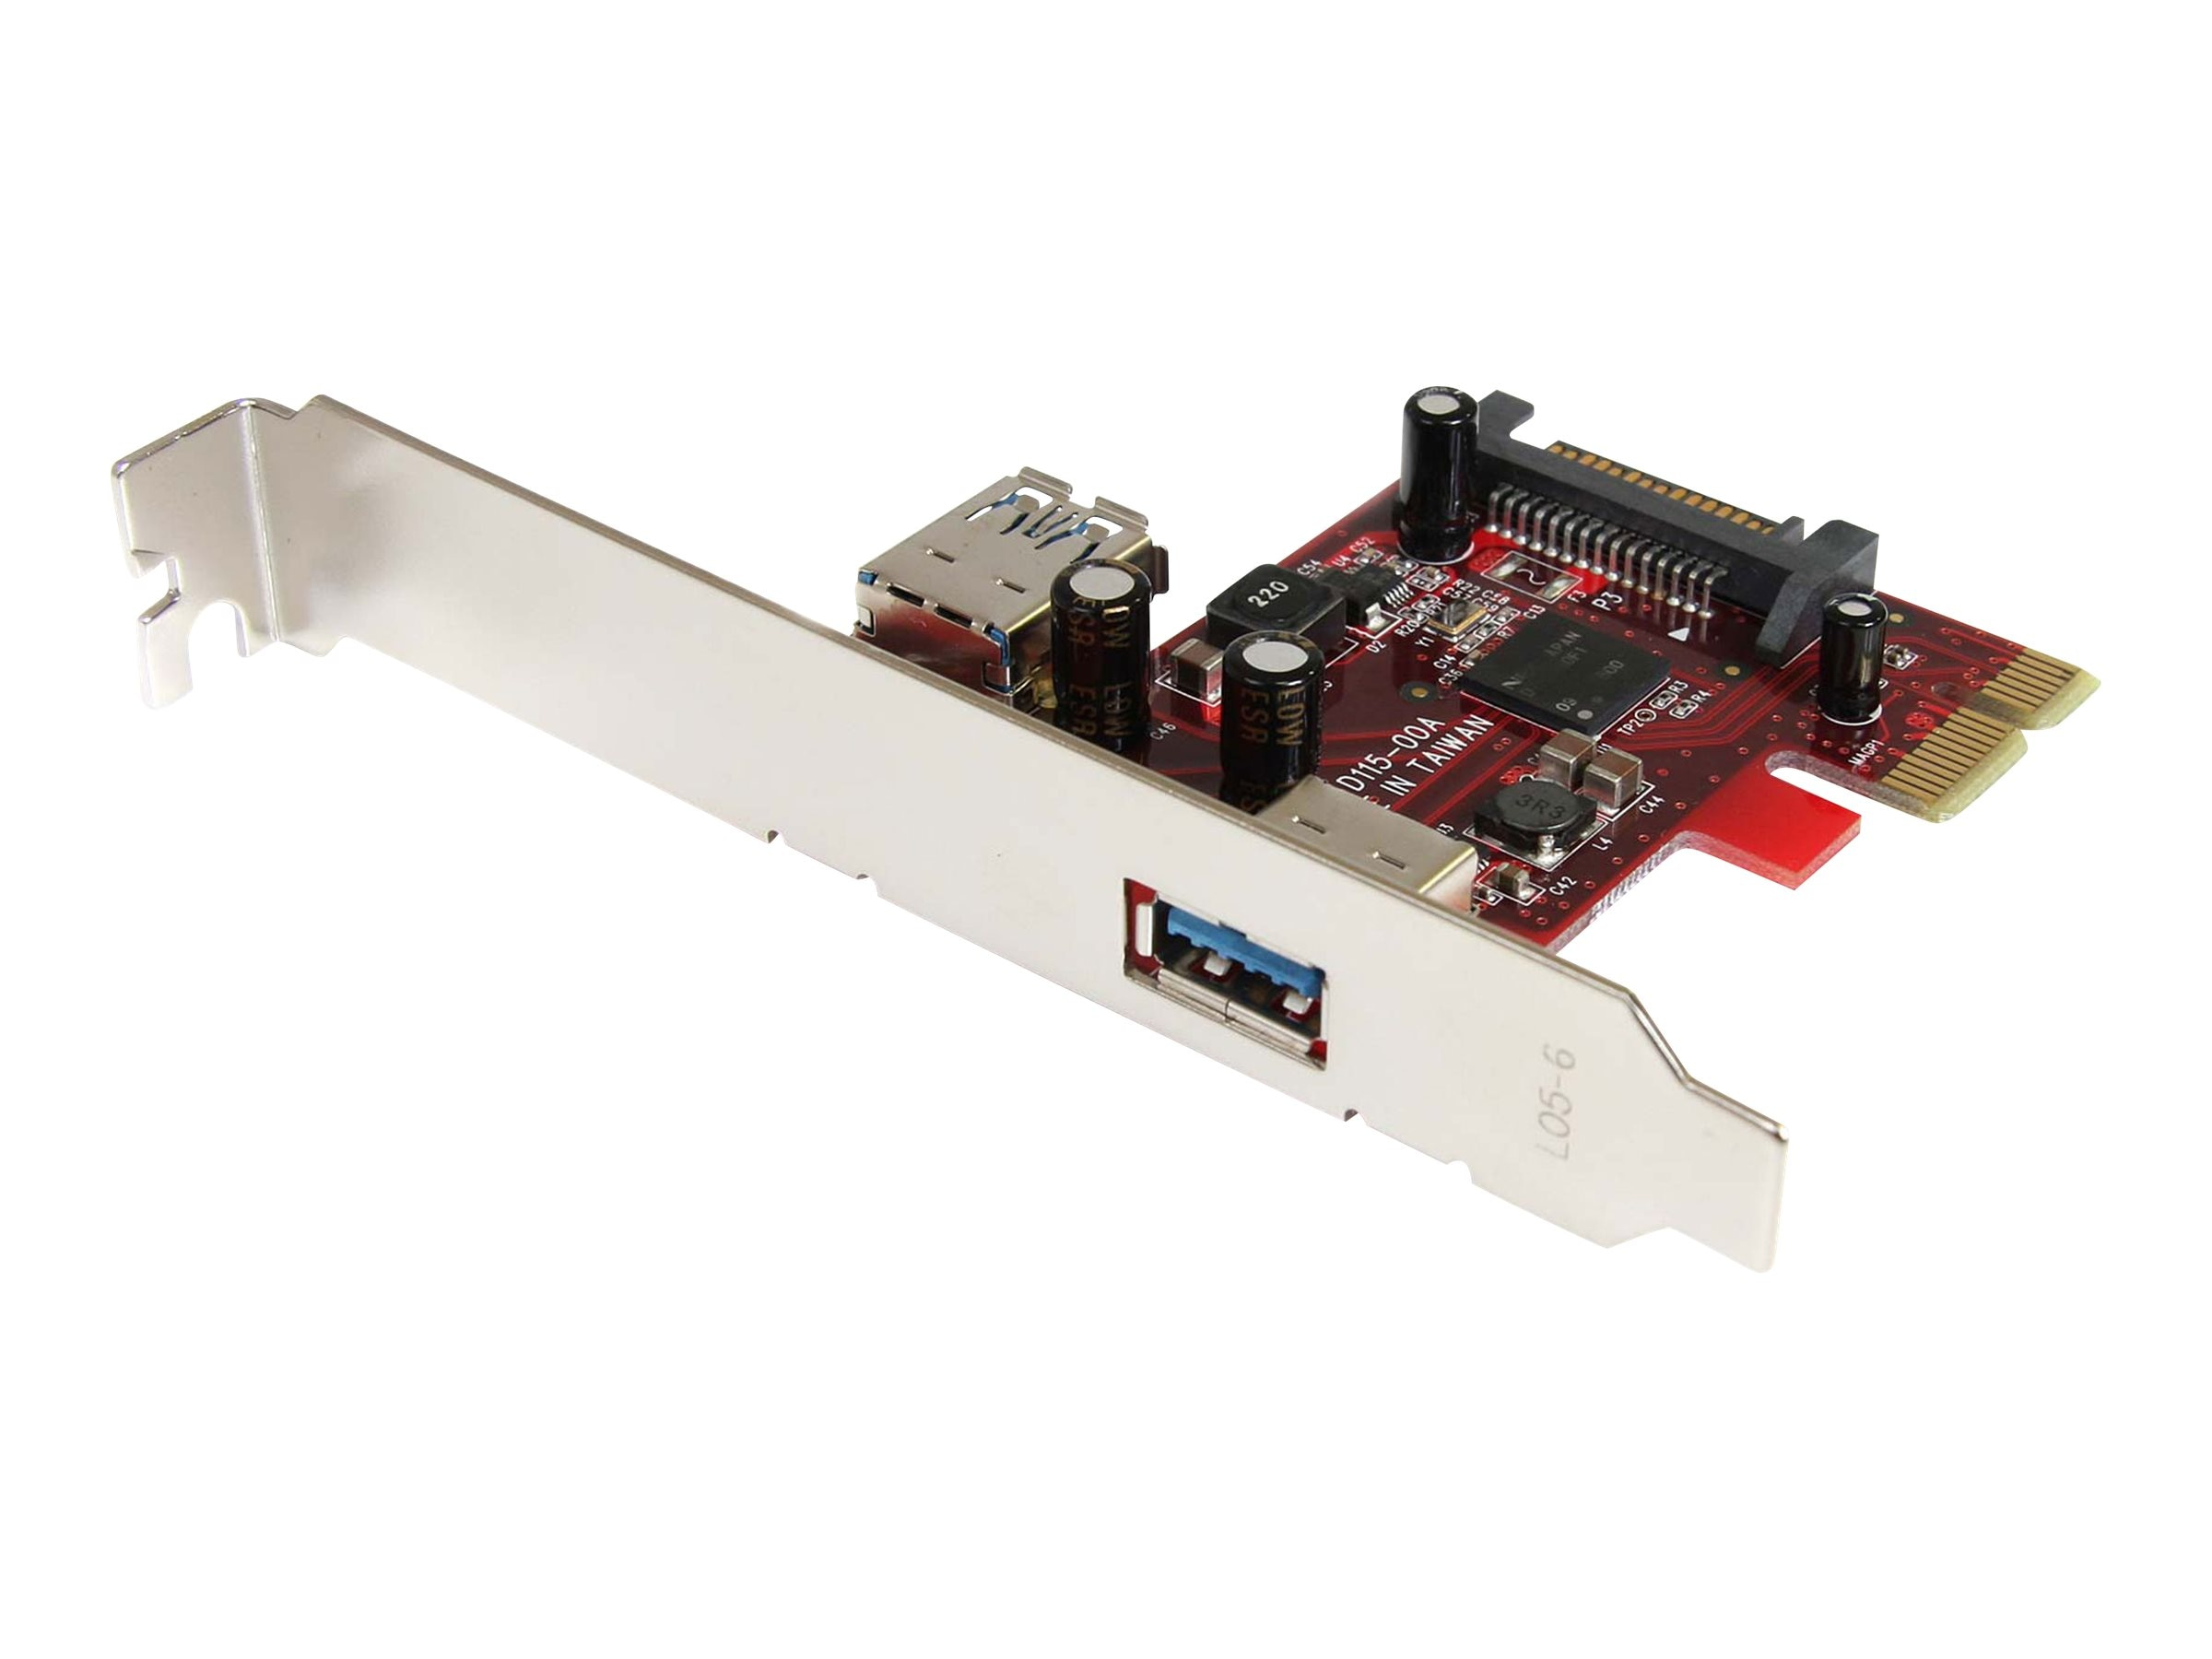 StarTech.com 1 Internal and 1 External Superspeed USB 3 Card PCIe, PEXUSB3S11, 11565912, USB & Firewire Hubs